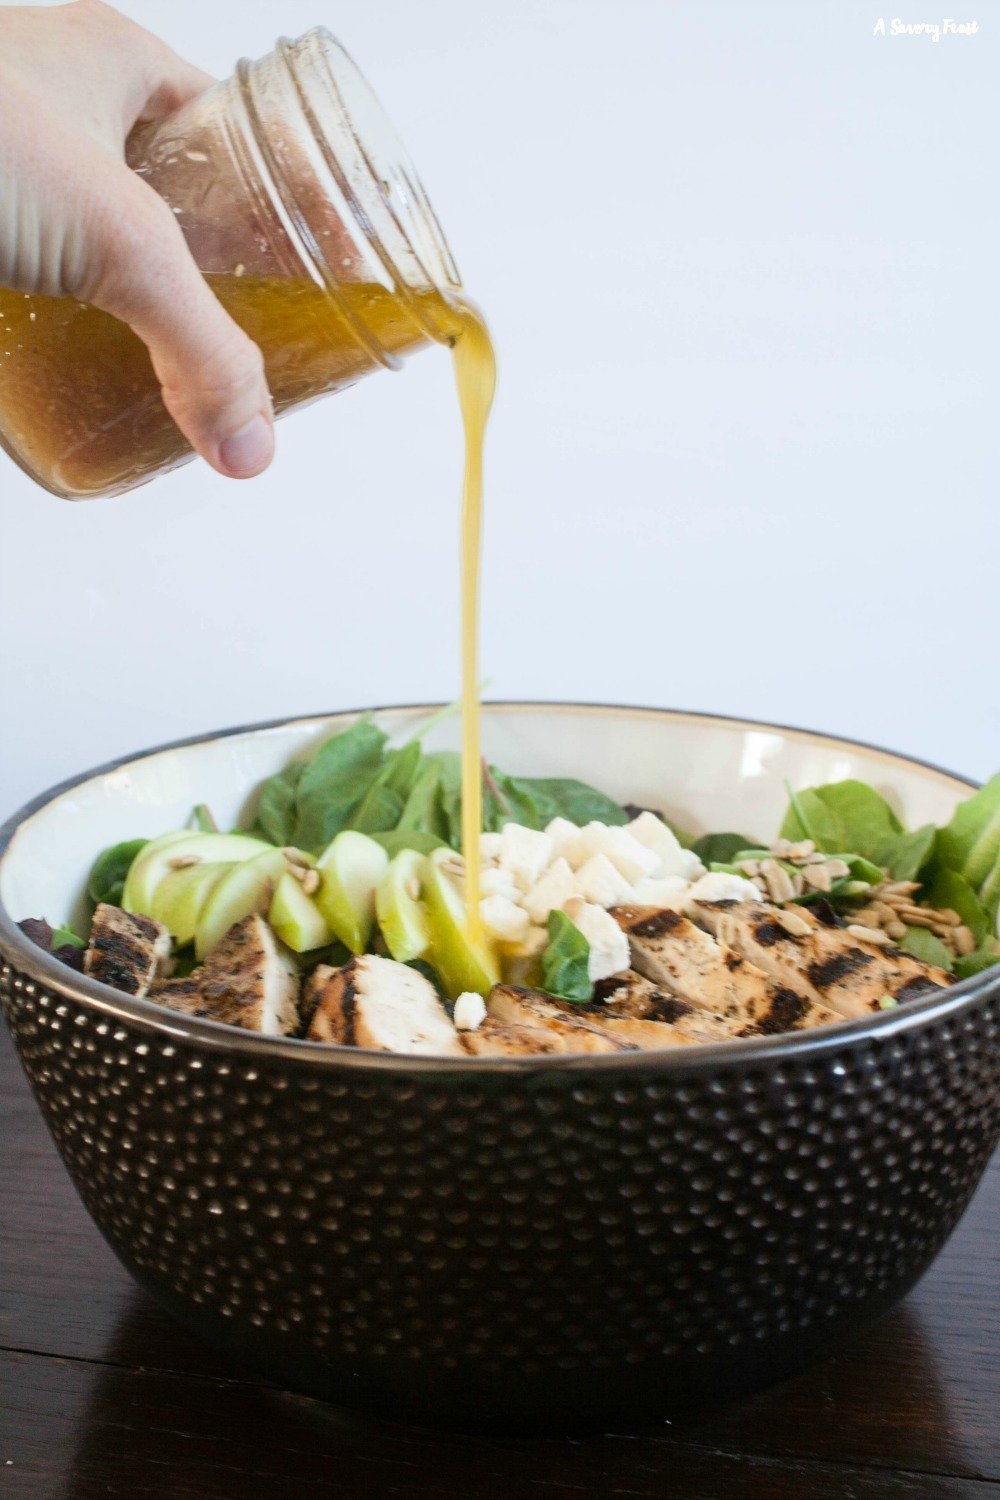 Grilled Chicken and Apple Salad with Homemade Apple Vinaigrette is an easy idea for dinner tonight!